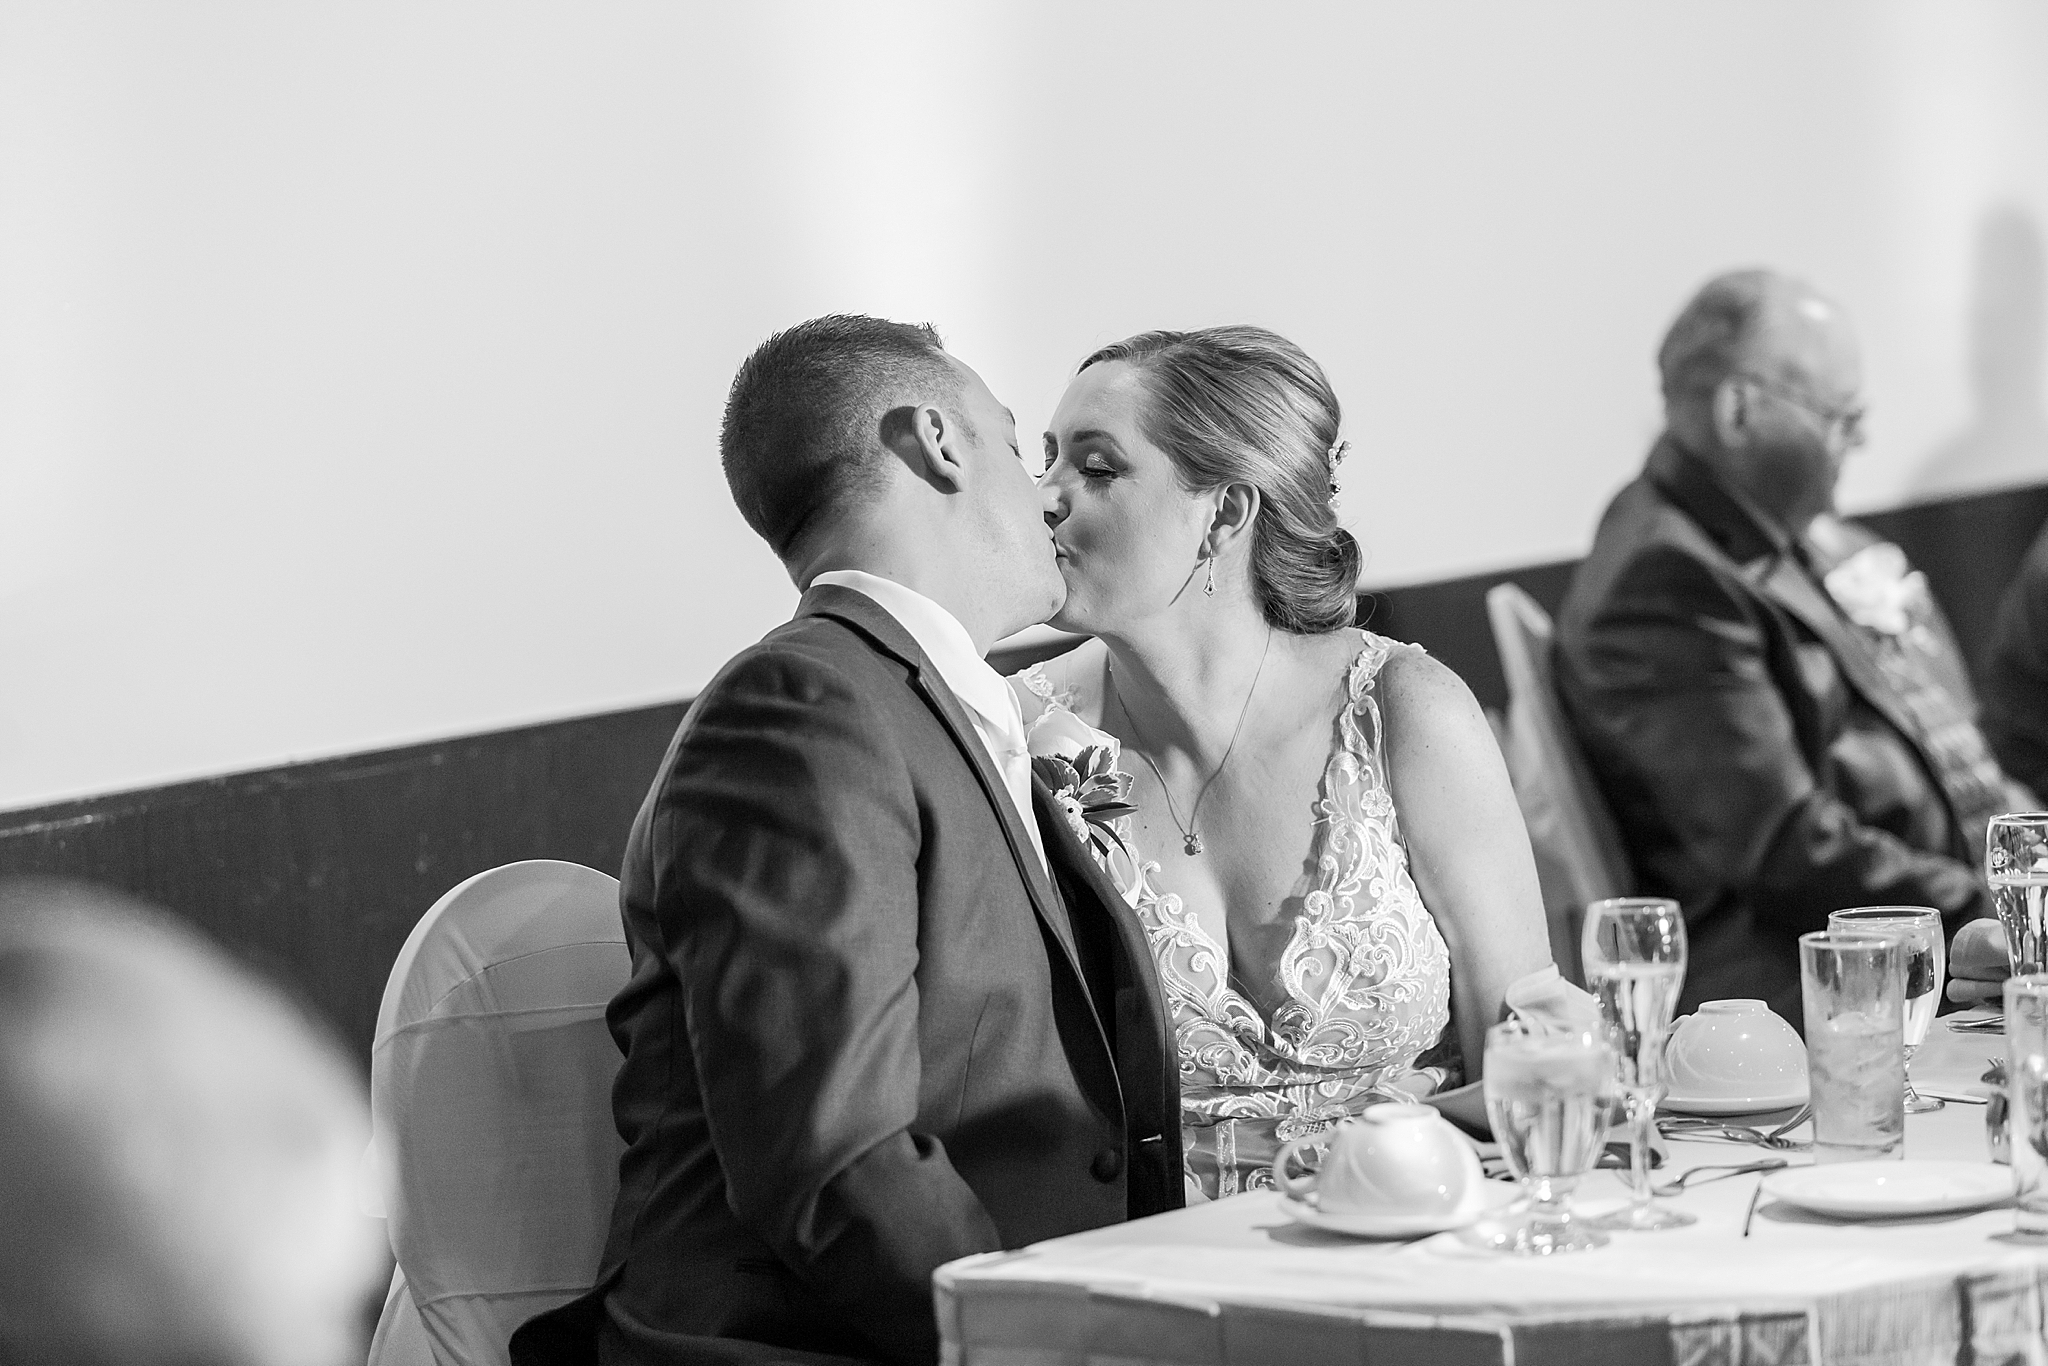 modern-romantic-wedding-photography-at-webers-in-ann-arbor-michigan-by-courtney-carolyn-photography_0069.jpg